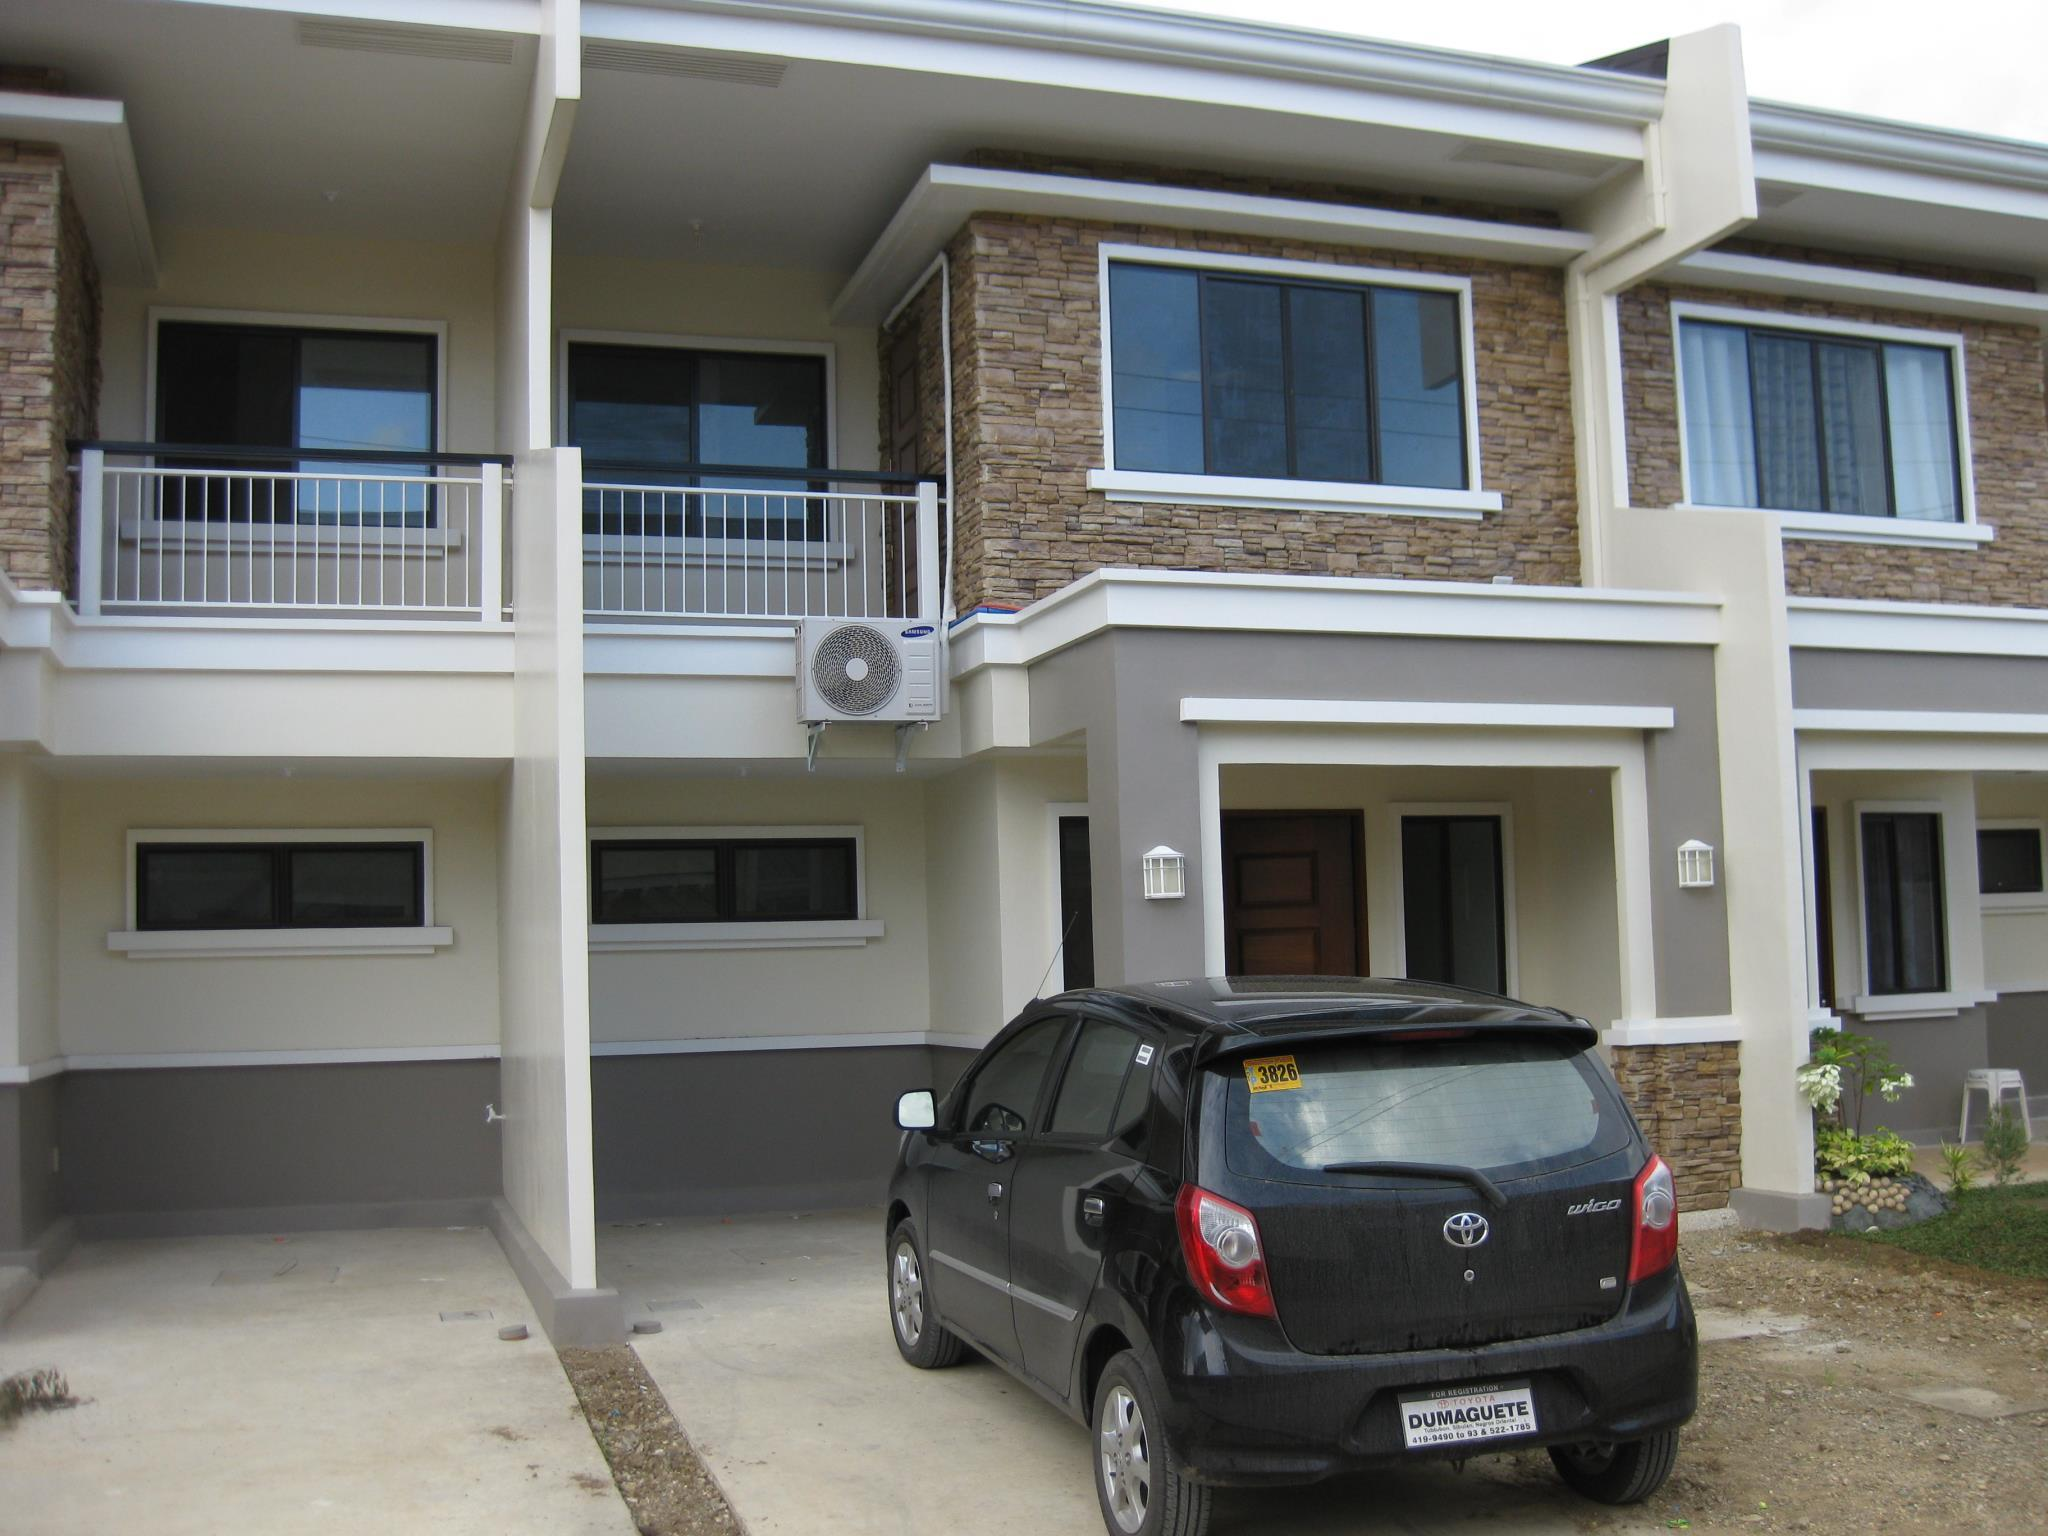 Melissa's 2-Story Apartment (Cebu), 3 BRs, 15 pax - Hotels Information/Map/Reviews/Reservation